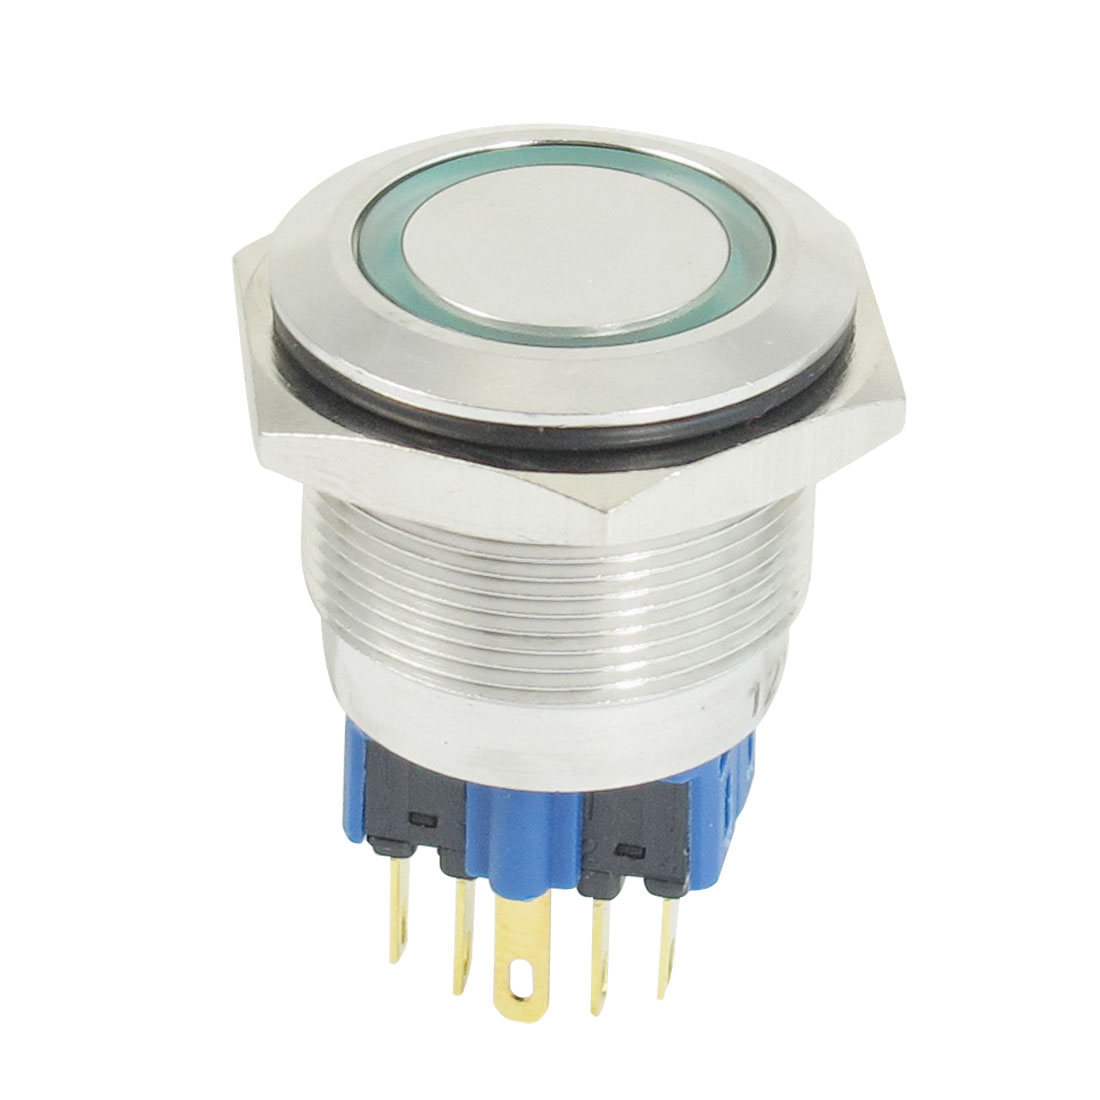 25mm 12VDC Green Ring LED Light Stainless Latching Push Button Switch 1NO 1NC